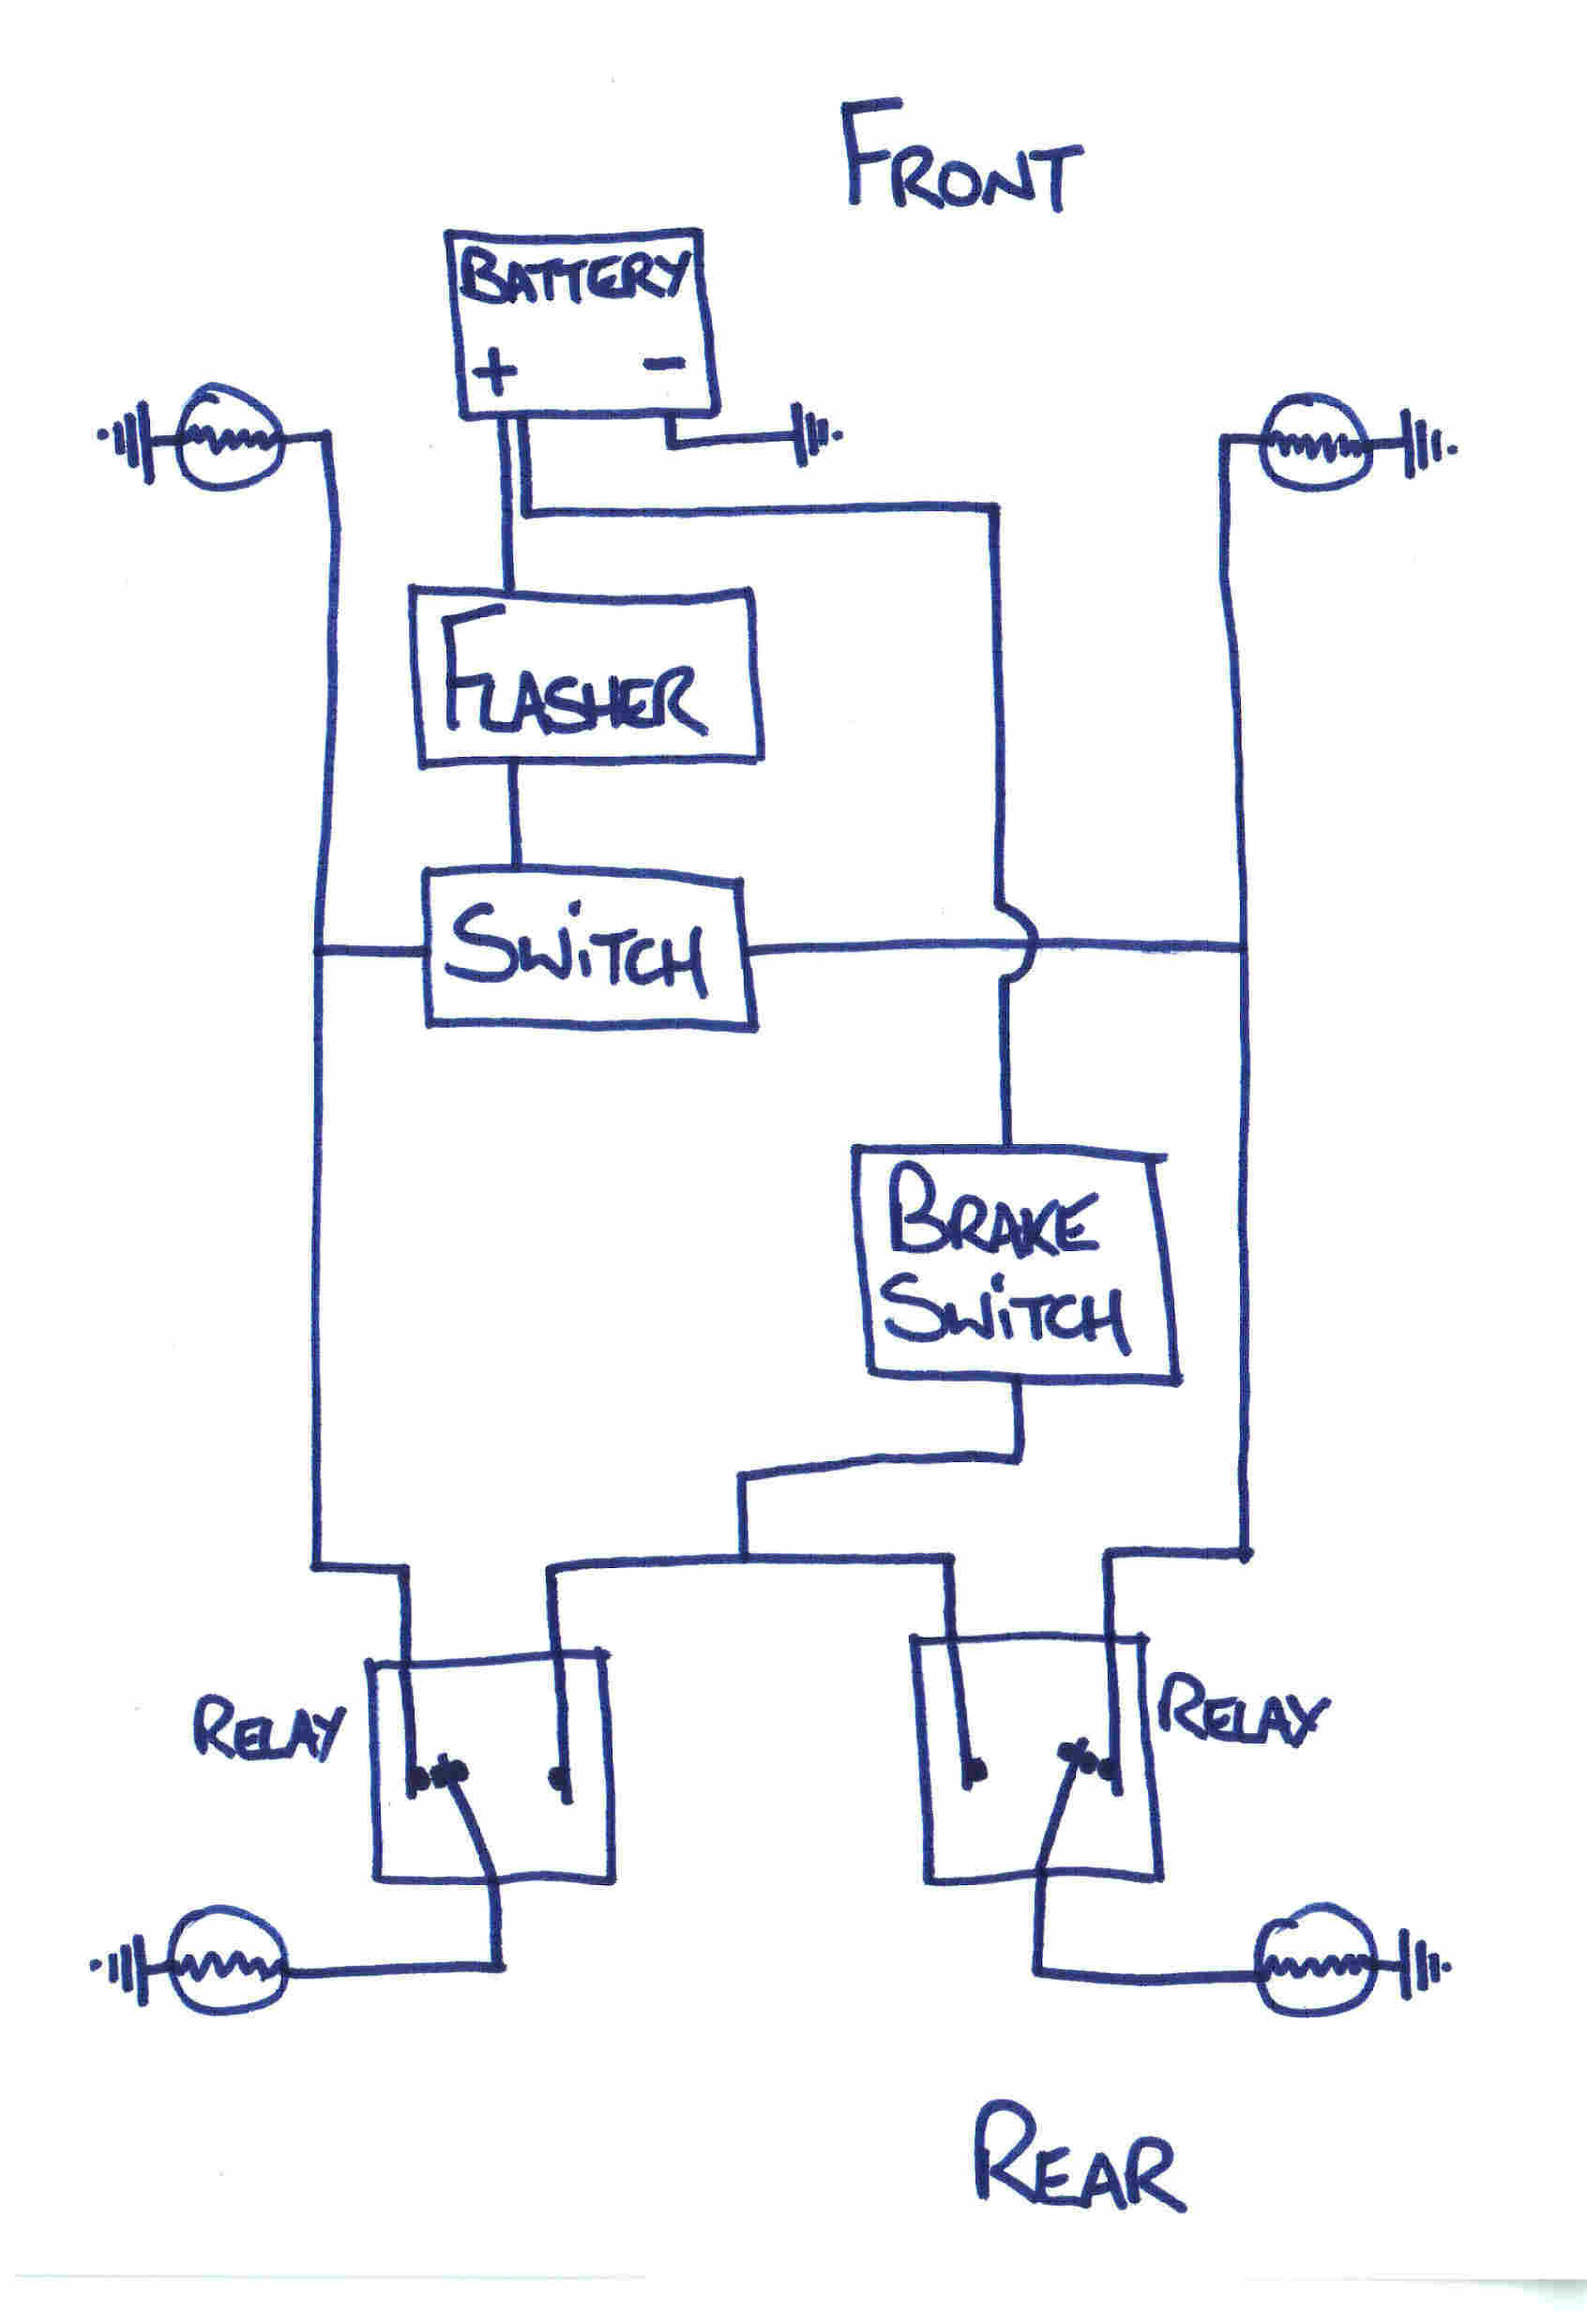 garys_flashers modern flasher circuits car flasher wiring diagram at gsmx.co